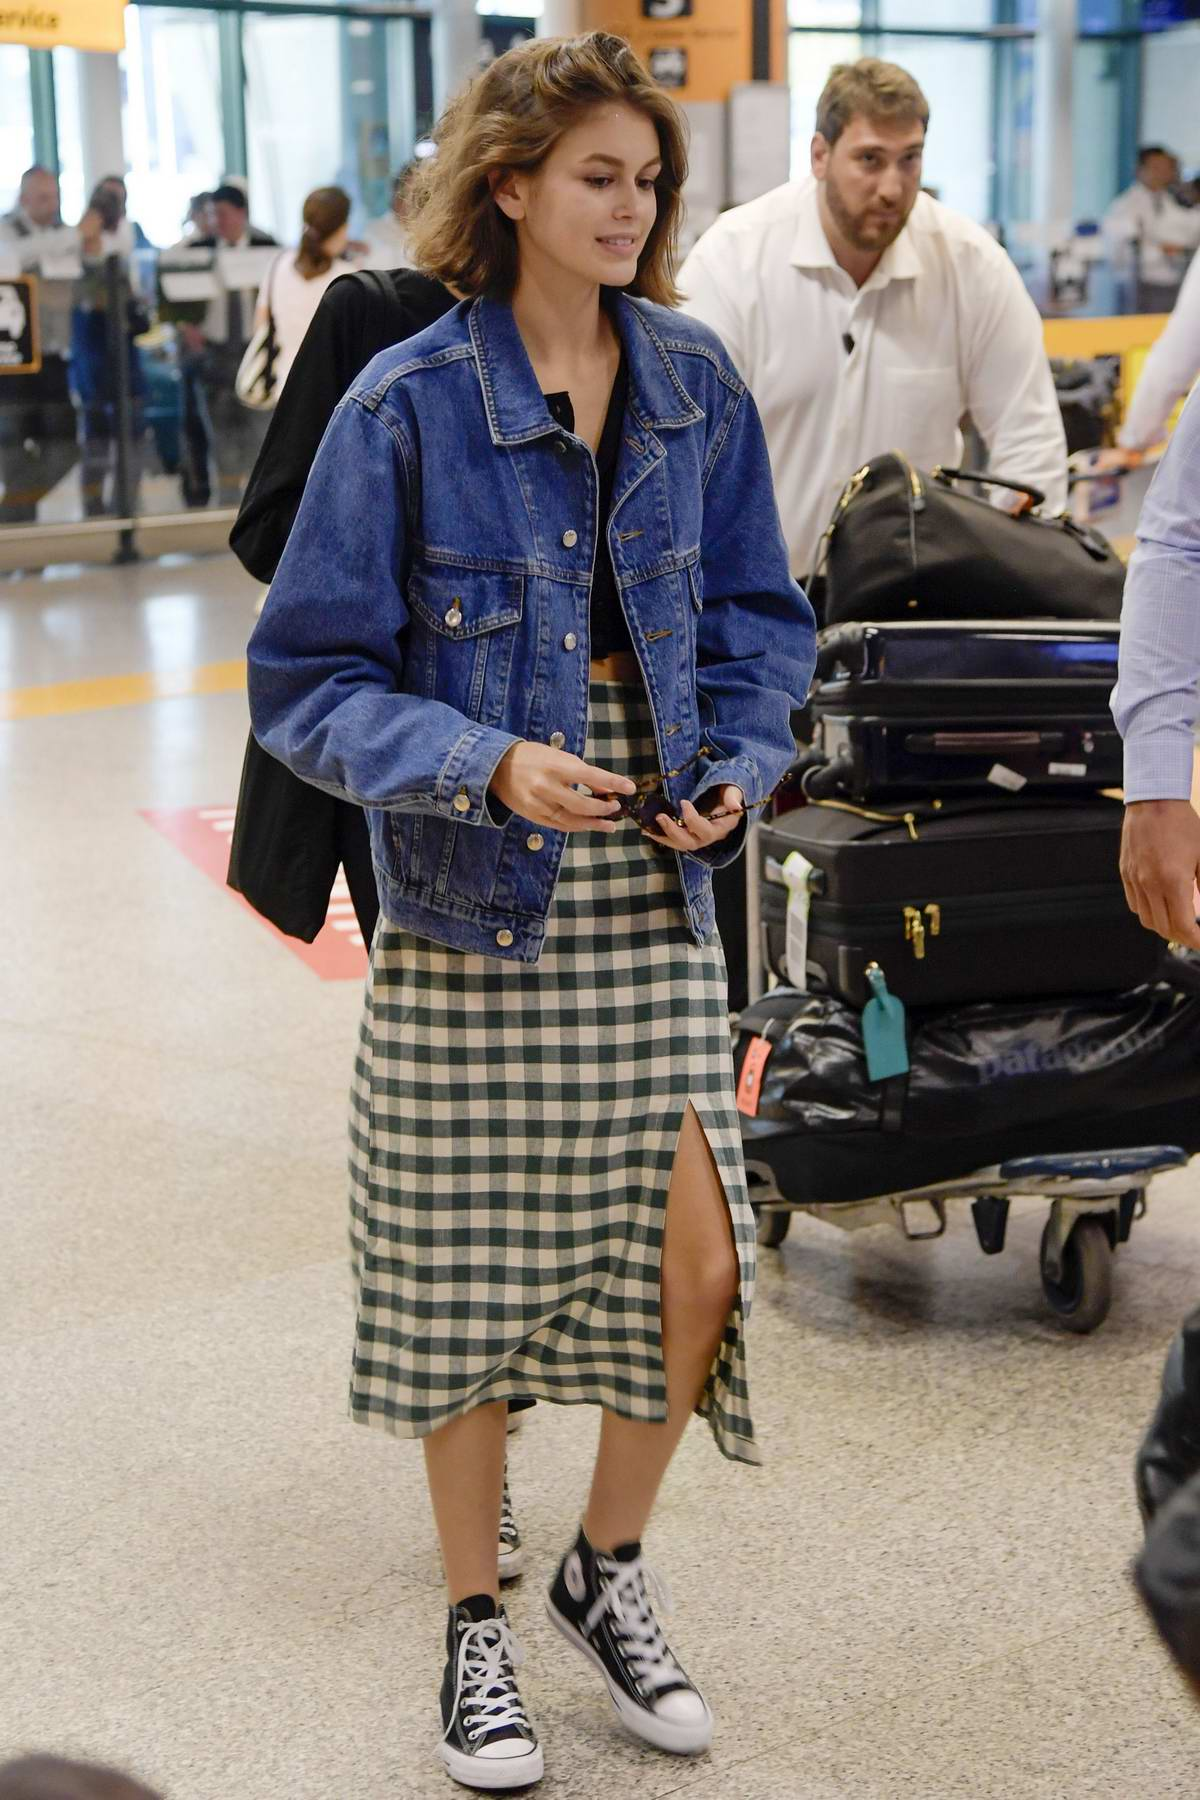 Kaia Gerber looks trendy in a plaid skirt, black top and denim jacket as touches down at Fiumicino Airport in Rome, Italy